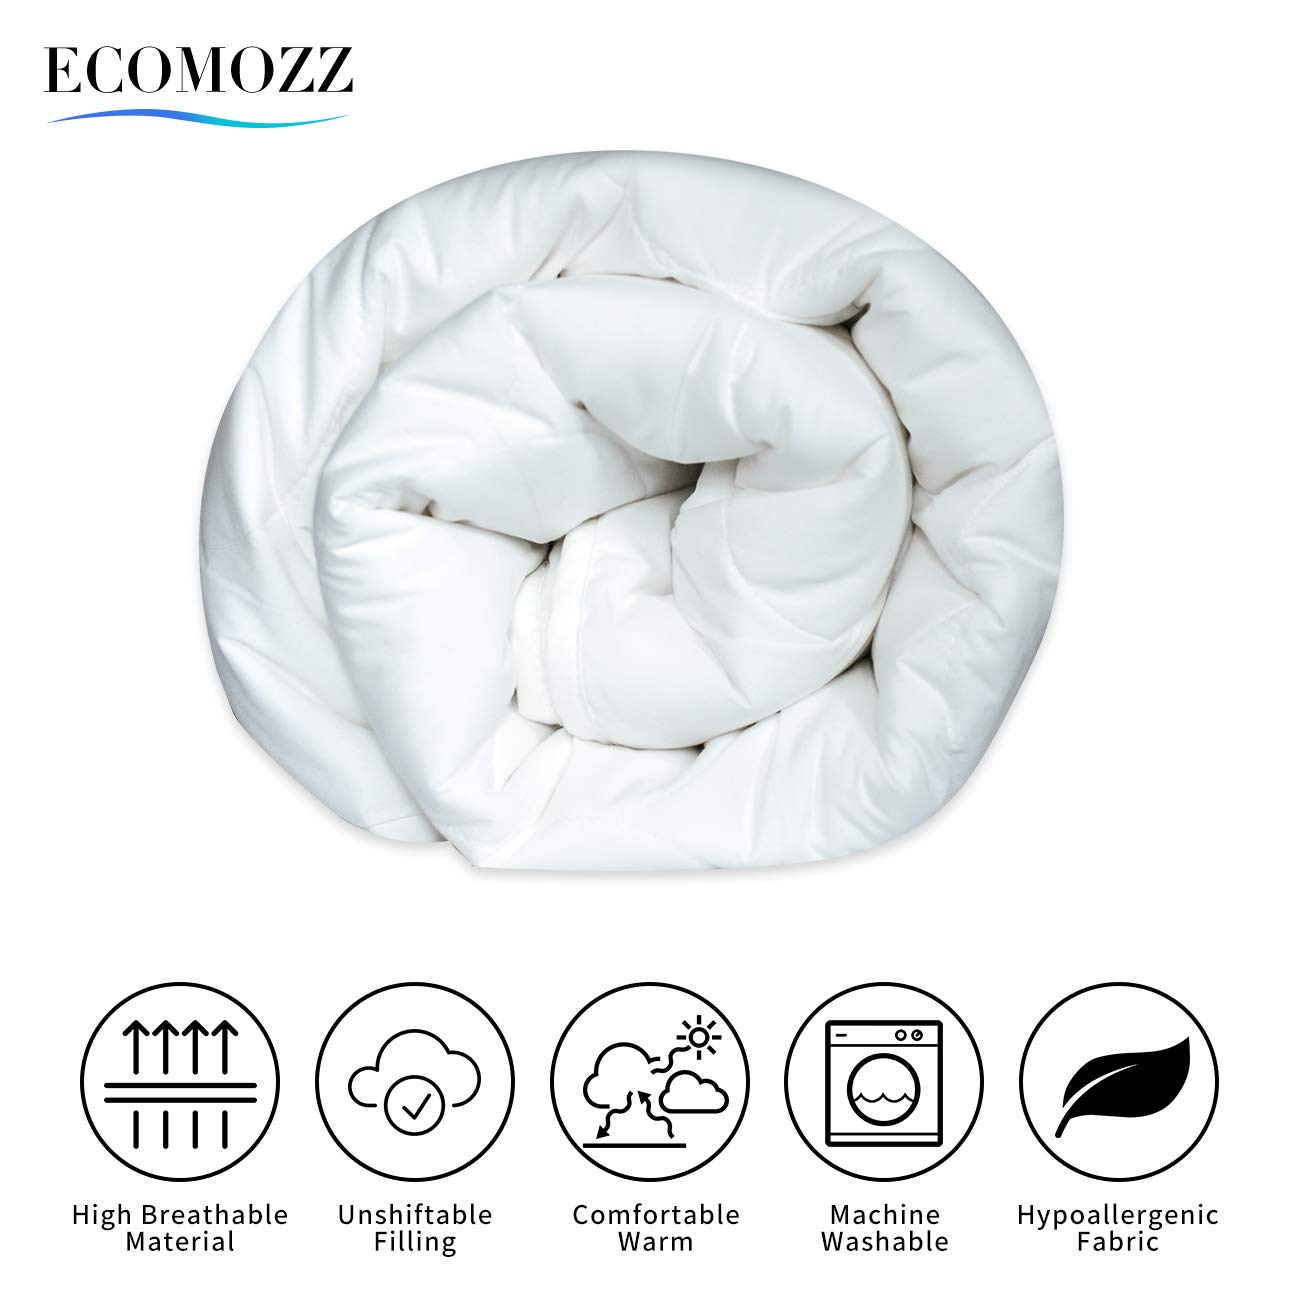 EcoMozz King Comforter with Corner Tabs - All Season Down Alternative Comforter - Soft Warm Quilted Duvet Insert - Hypoallergenic Fluffy Hotel Collection - White by EcoMozz (Image #3)